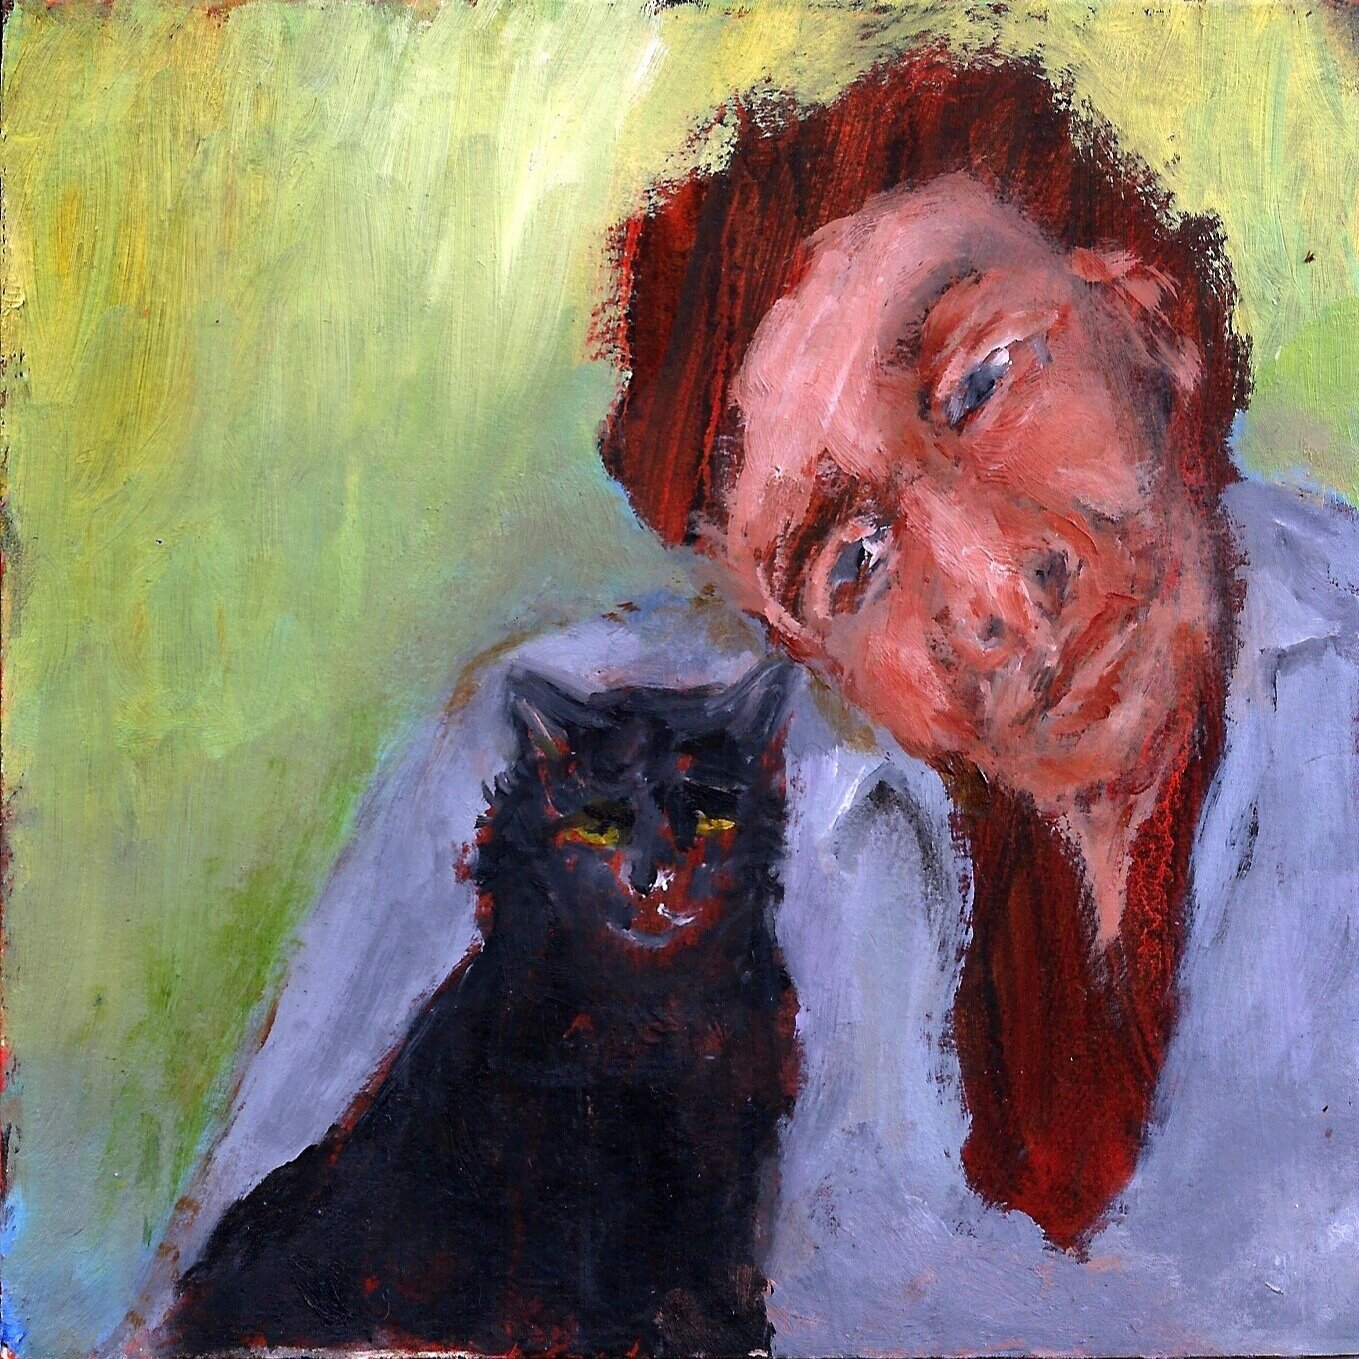 Watching+Television+-+Mary+Edwards+-+Oil+-+4.5x4.5in.jpg